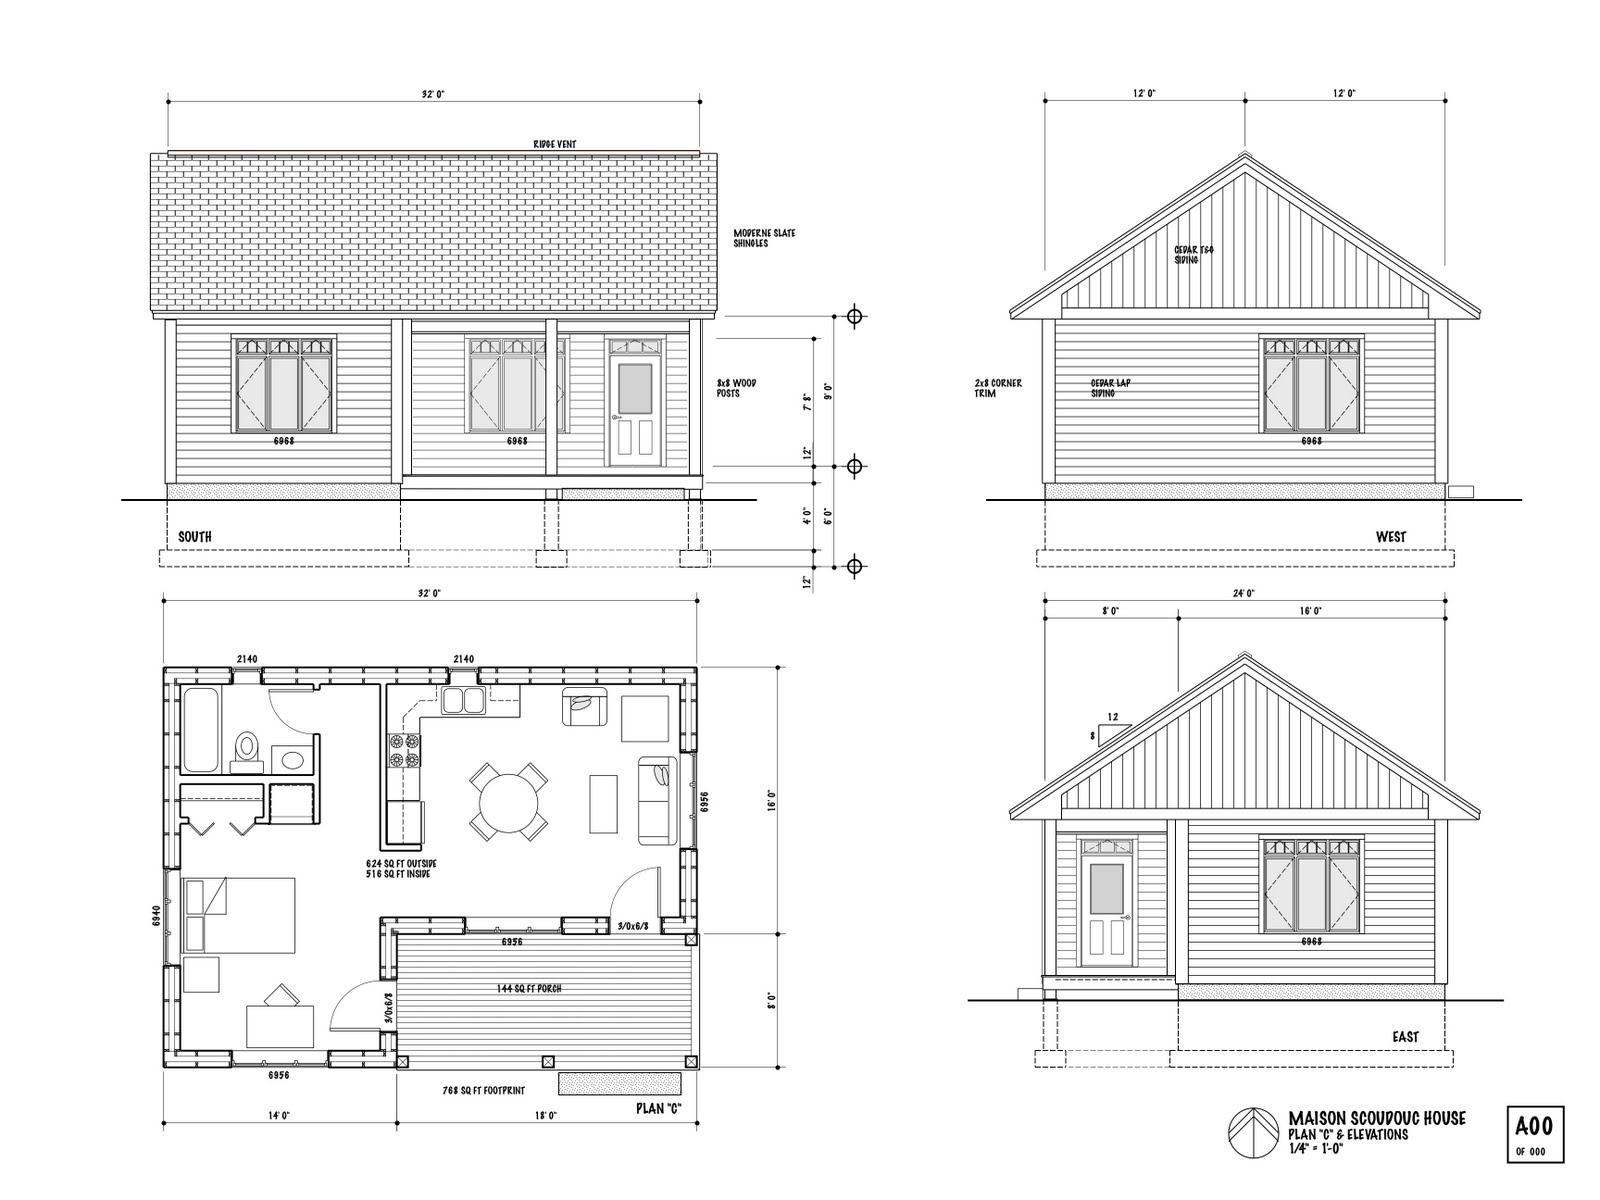 the maison scoudouc house plan c is designed as a small 624 sq ft one